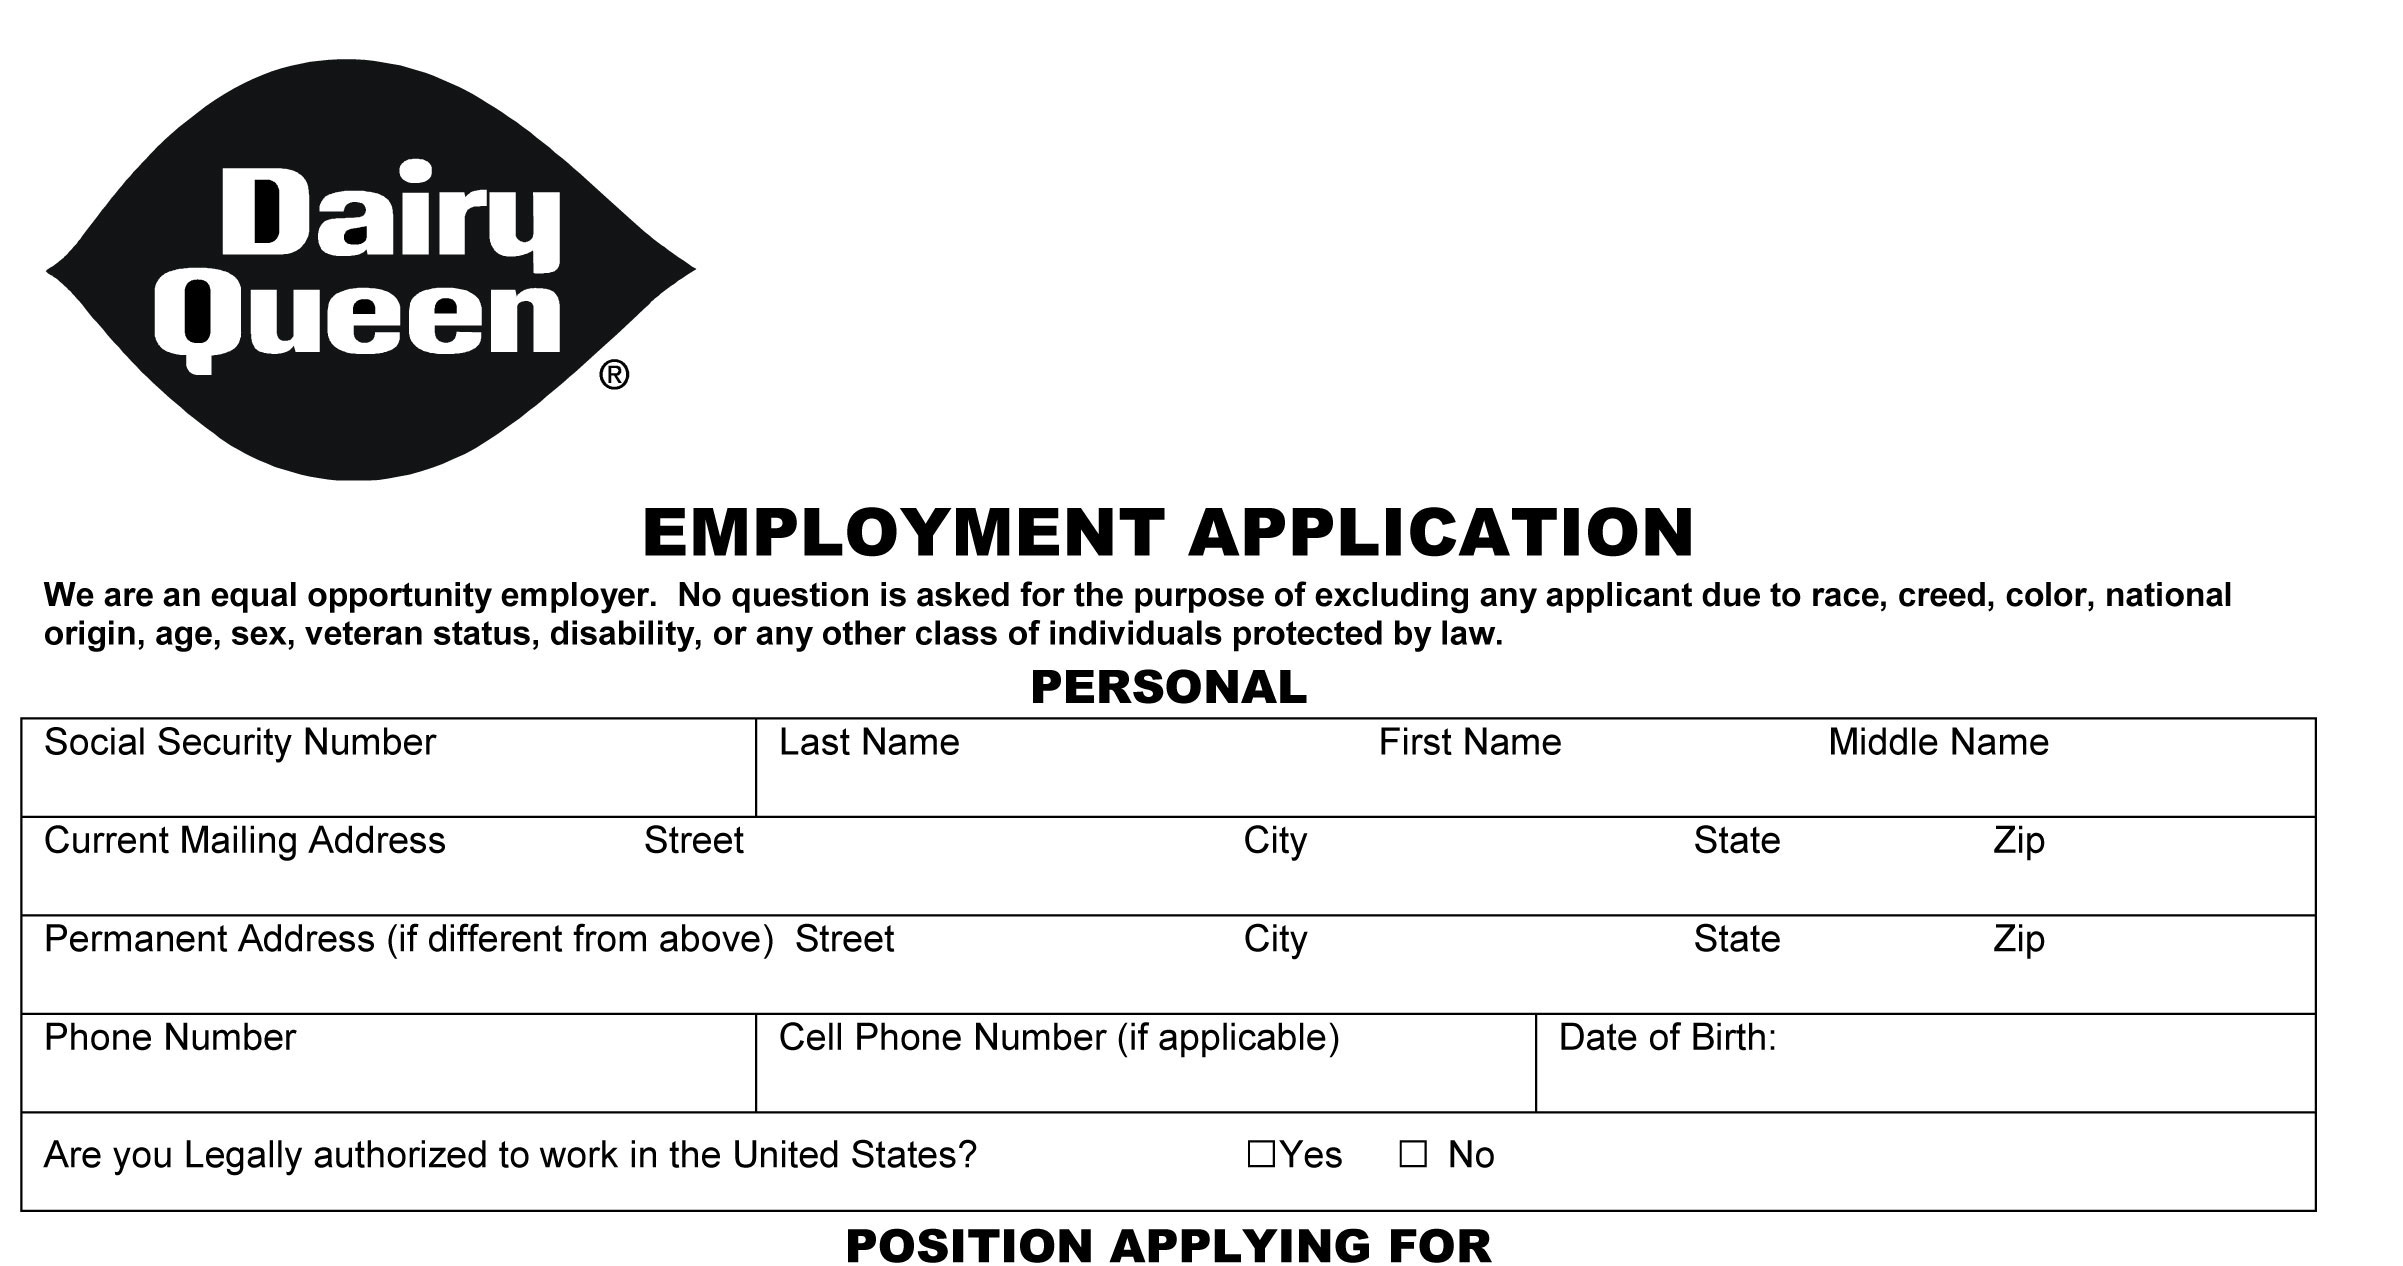 Dairy Queen Job Application - Printable Employment PDF Forms